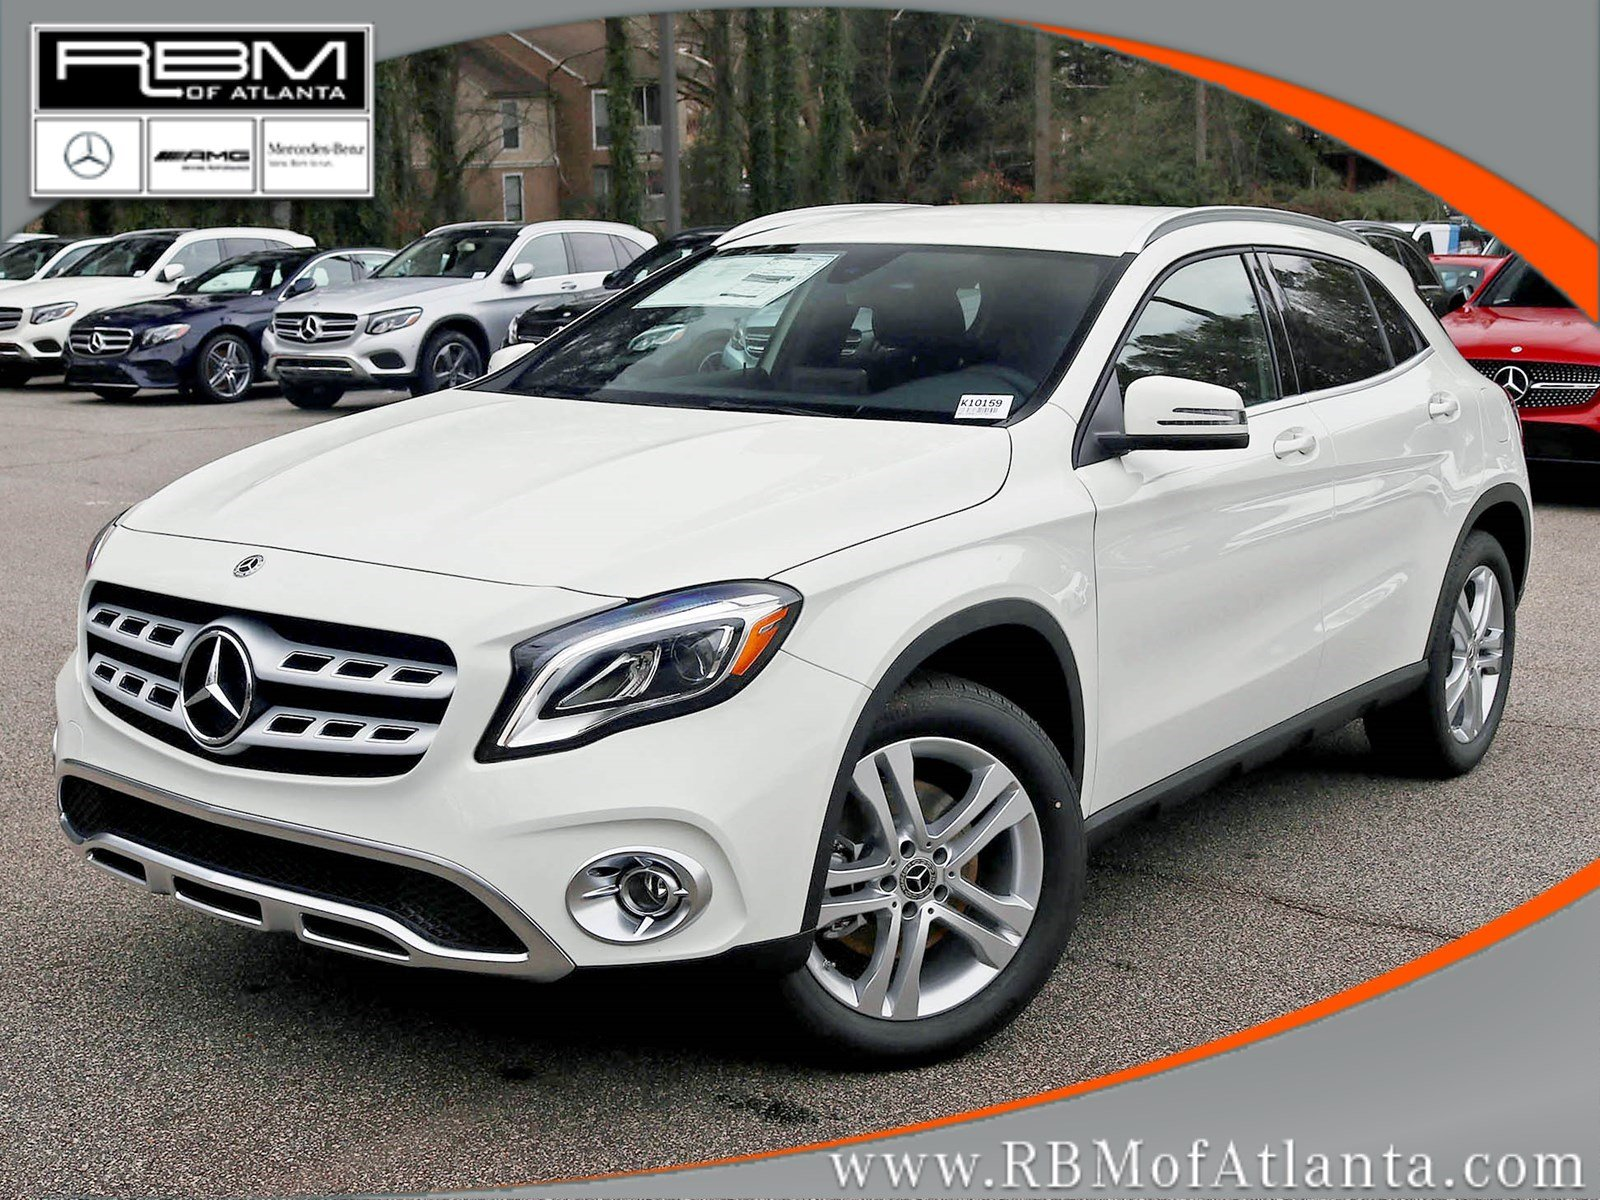 New 2018 mercedes benz gla gla 250 suv in atlanta k10159 for Pay mercedes benz online